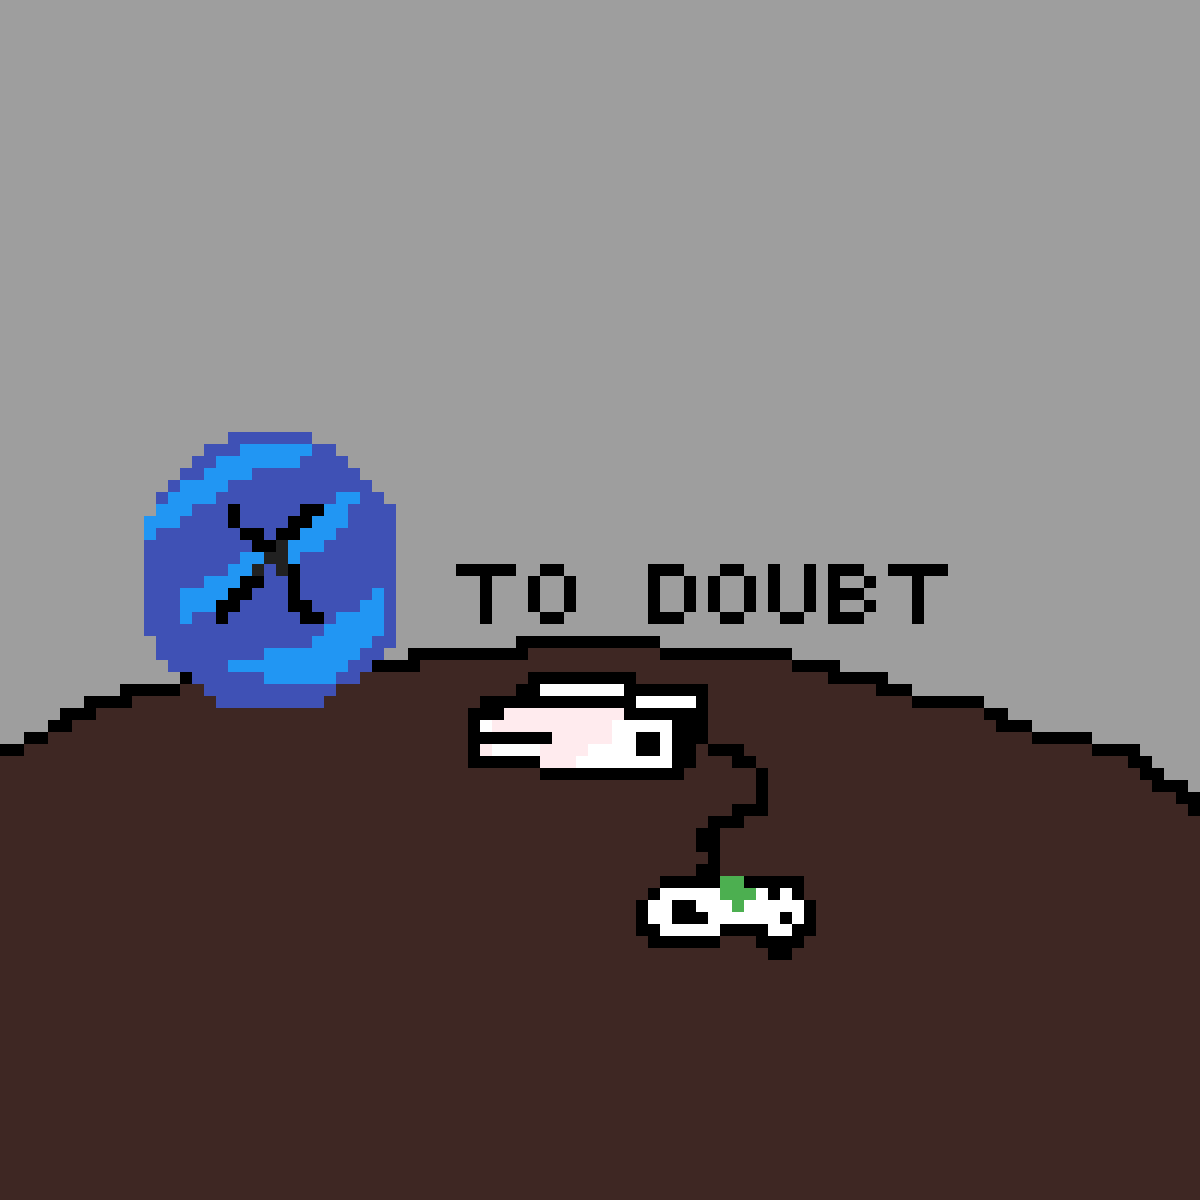 X to doubt by NicDraws42